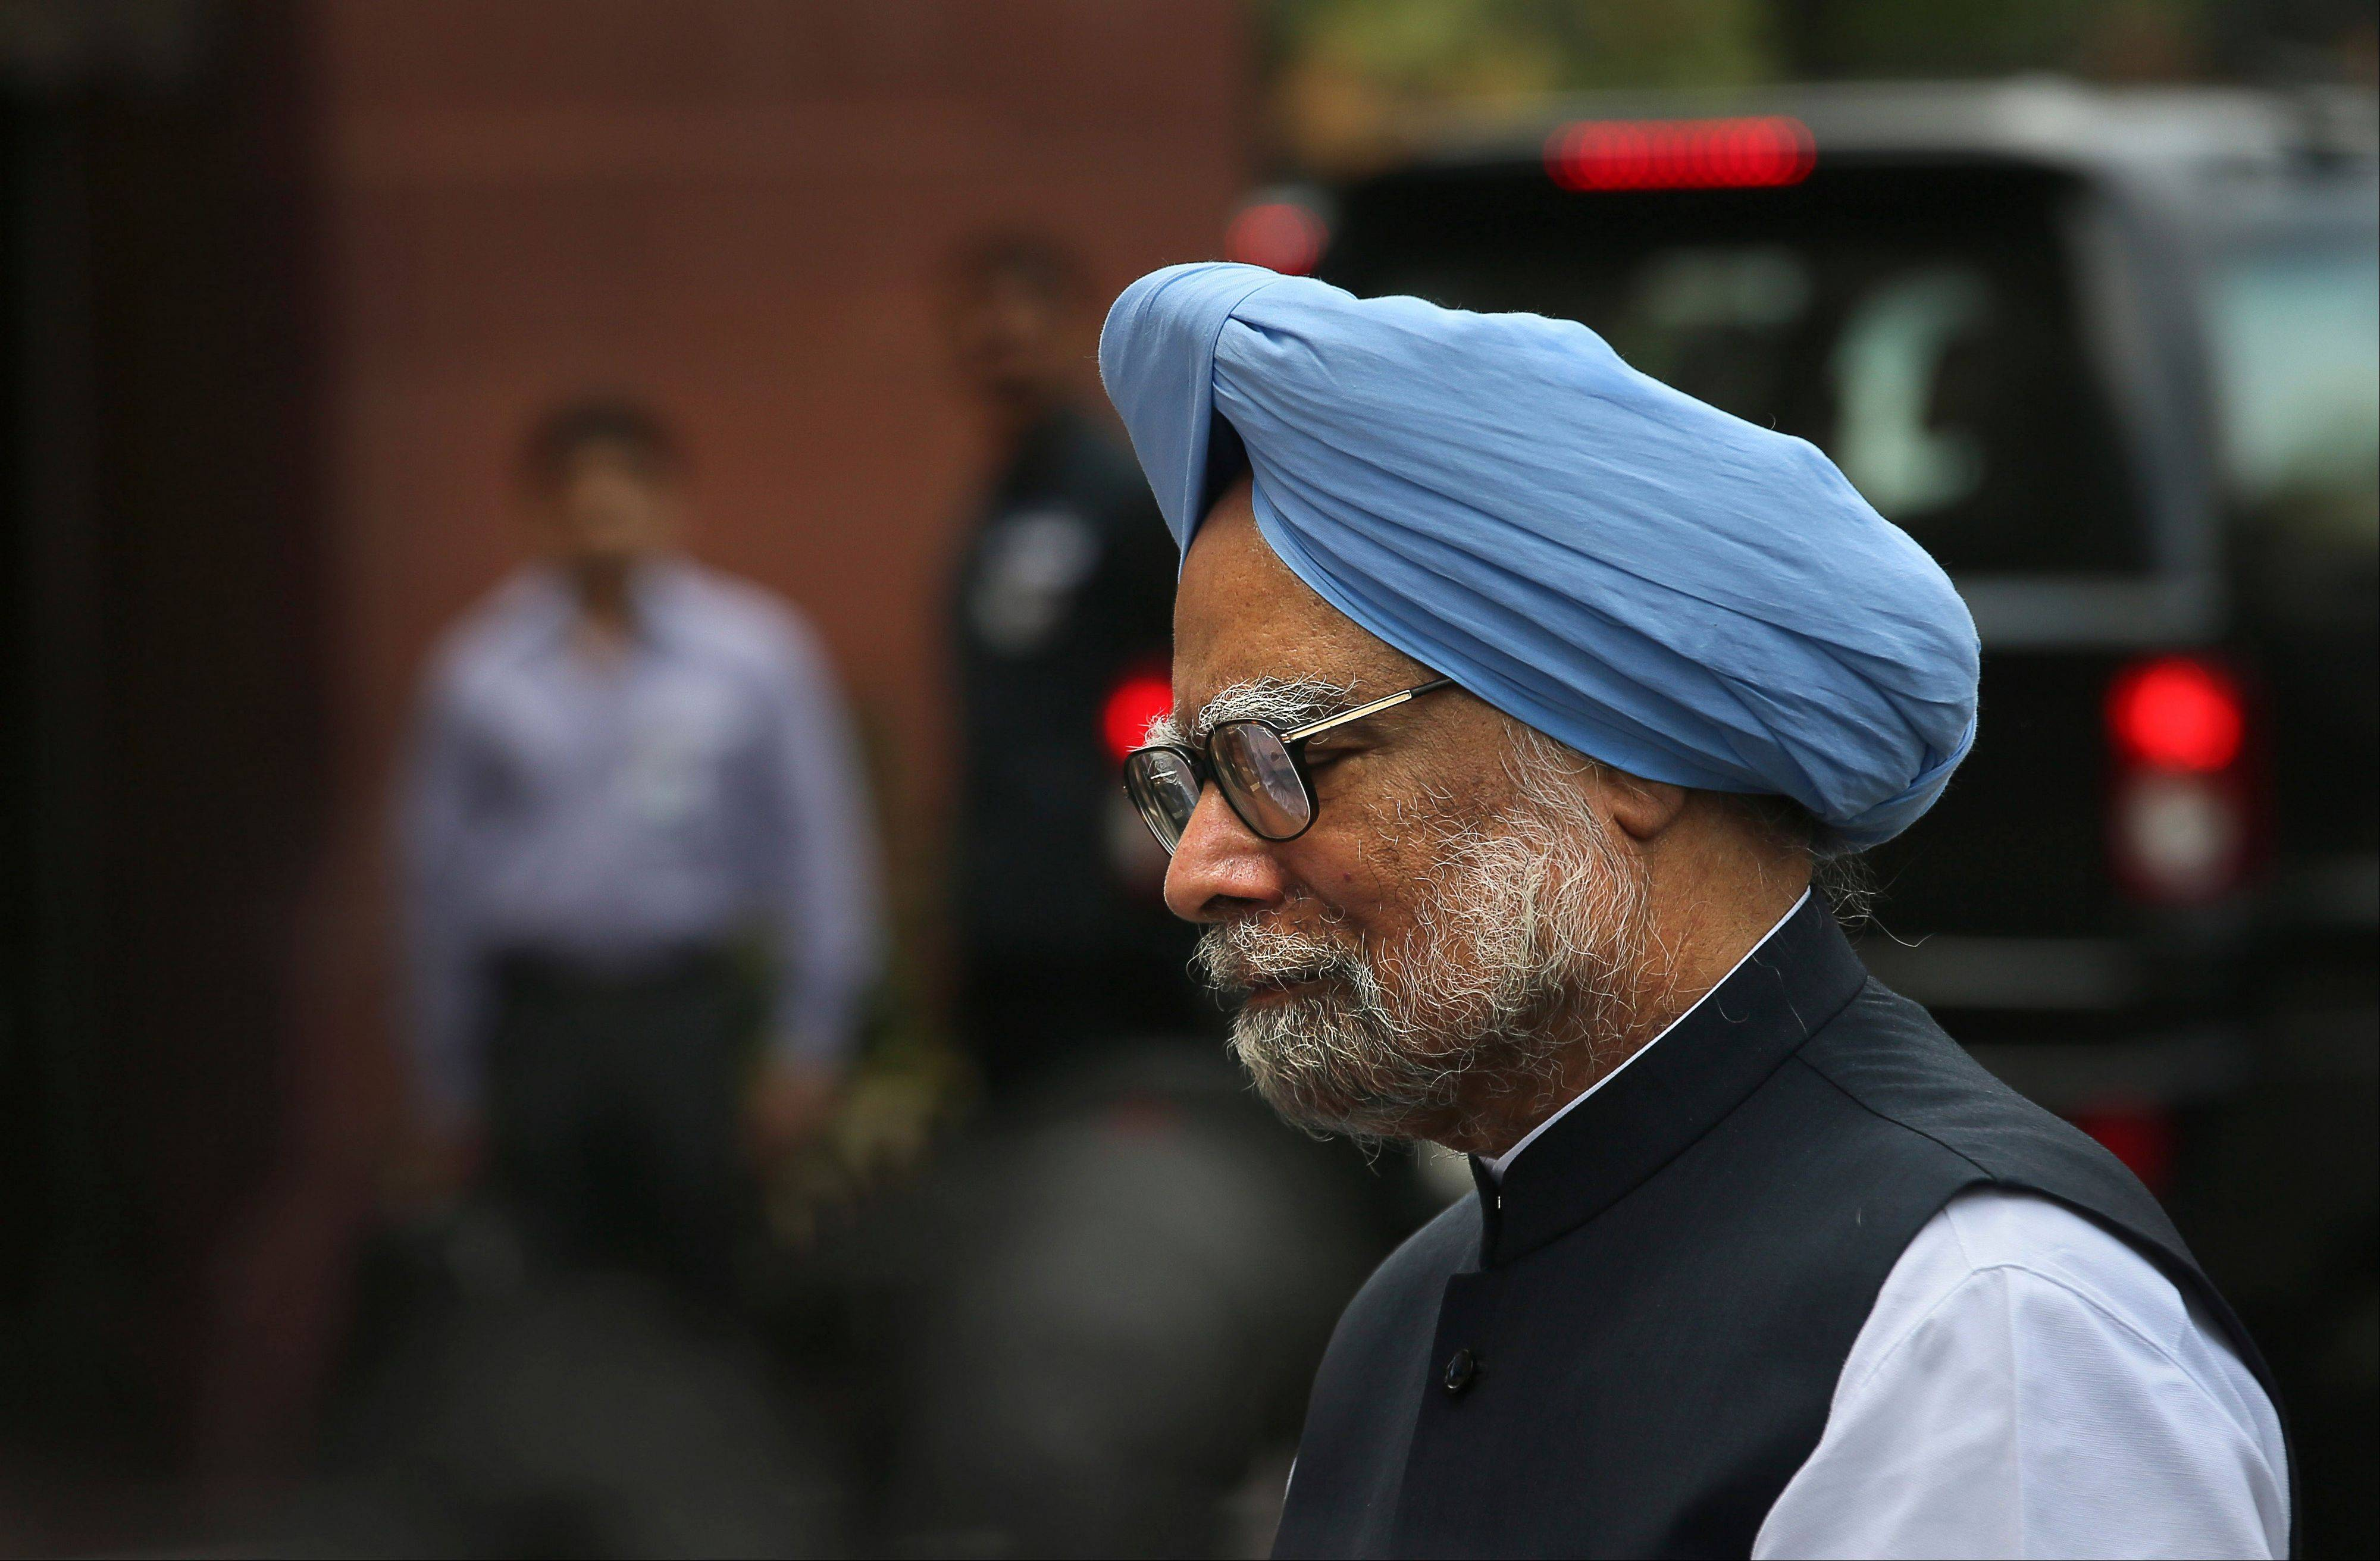 Indian Prime Minister Manmohan Singh leaves after making a statement to the media after he was shouted down by opposition politicians in the lower house of the Parliament, in New Delhi, India, Monday, Aug. 27, 2012. Singh took to Twitter on Monday to defend himself against a coal scandal roiling the country, saying accusations his government lost the country huge amounts of money were baseless.